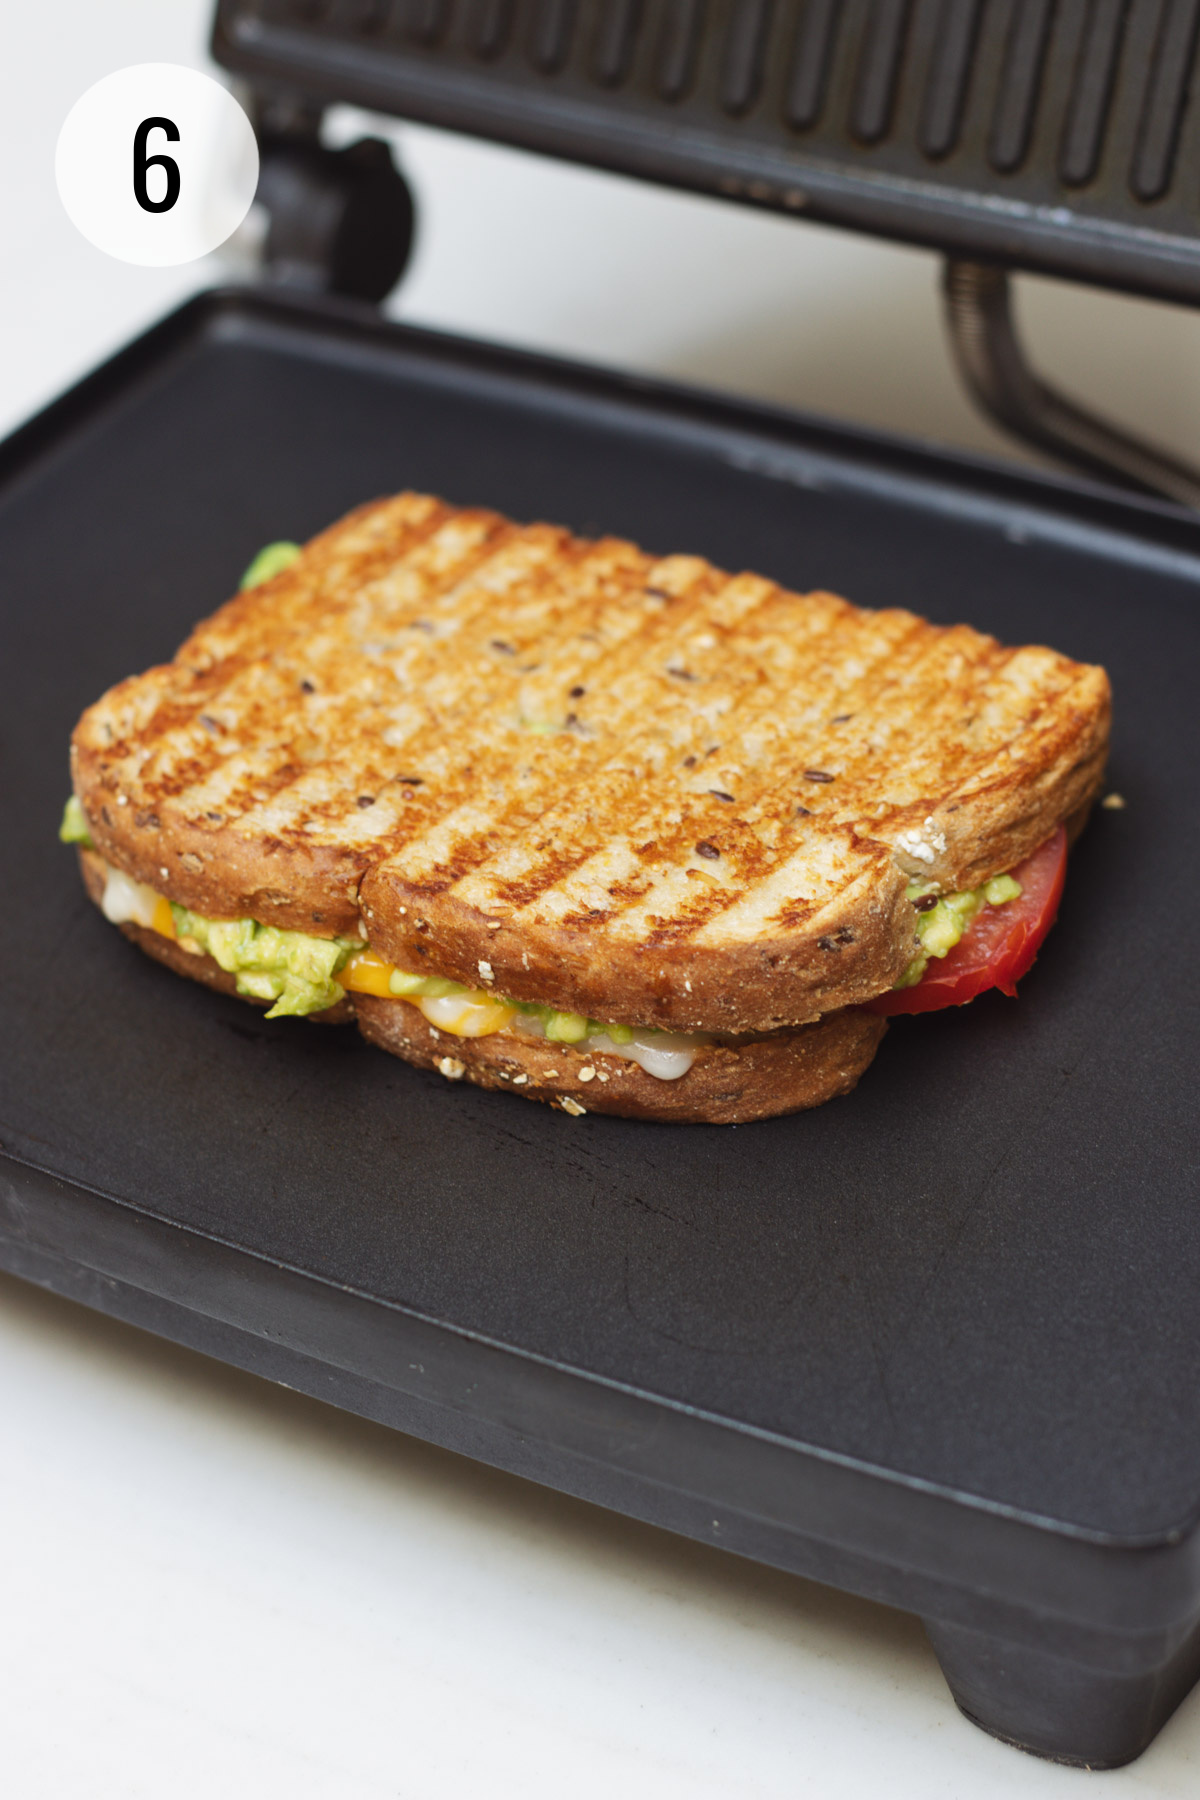 Grilled tomato and avocado grilled cheese sandwich on a panini maker.